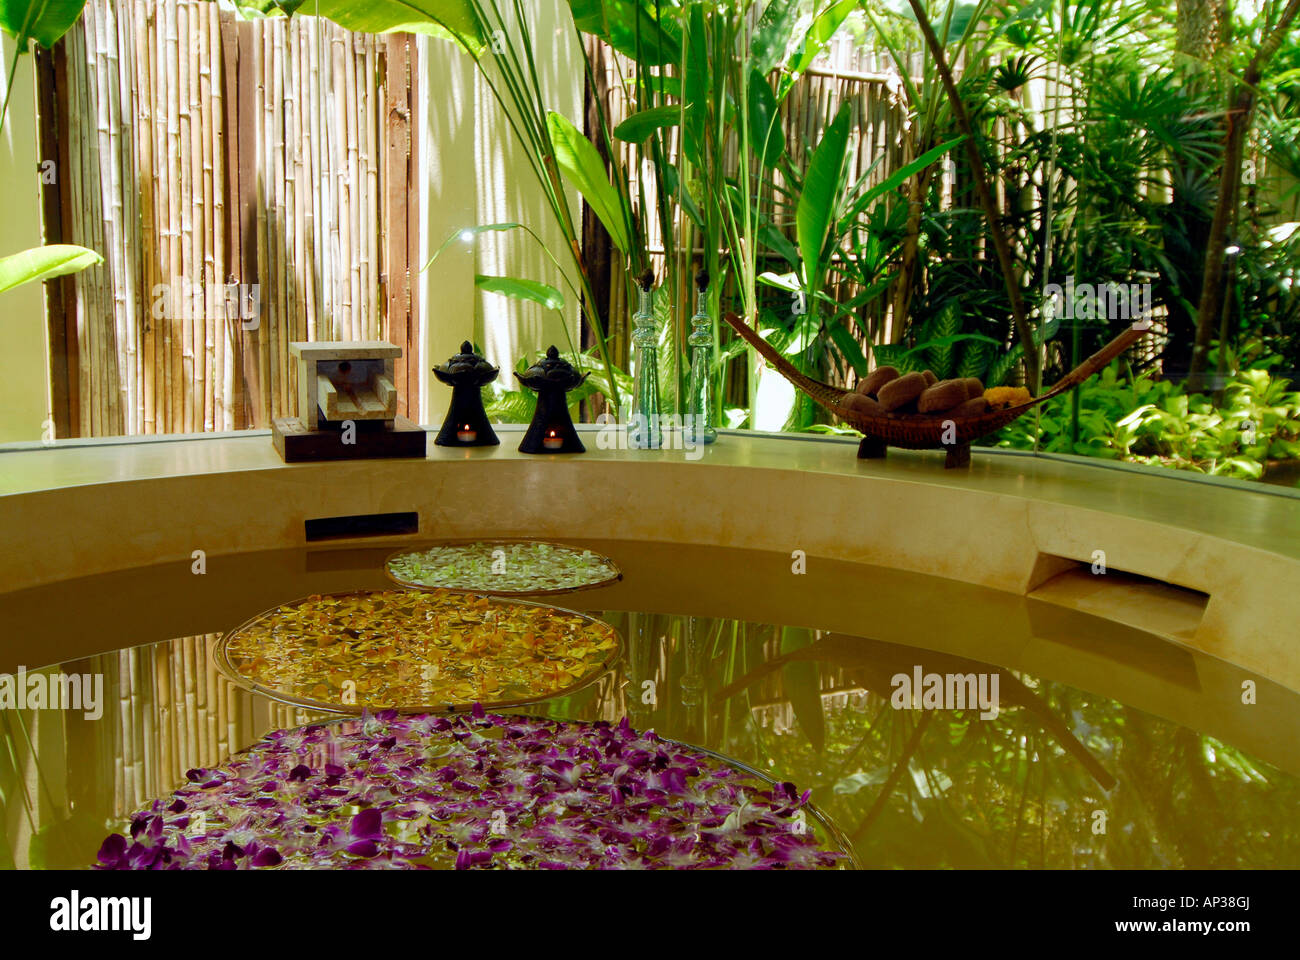 Bath tub in the massage room, Spa, of Hotel Rayavadee, Hat Phra Nang ...